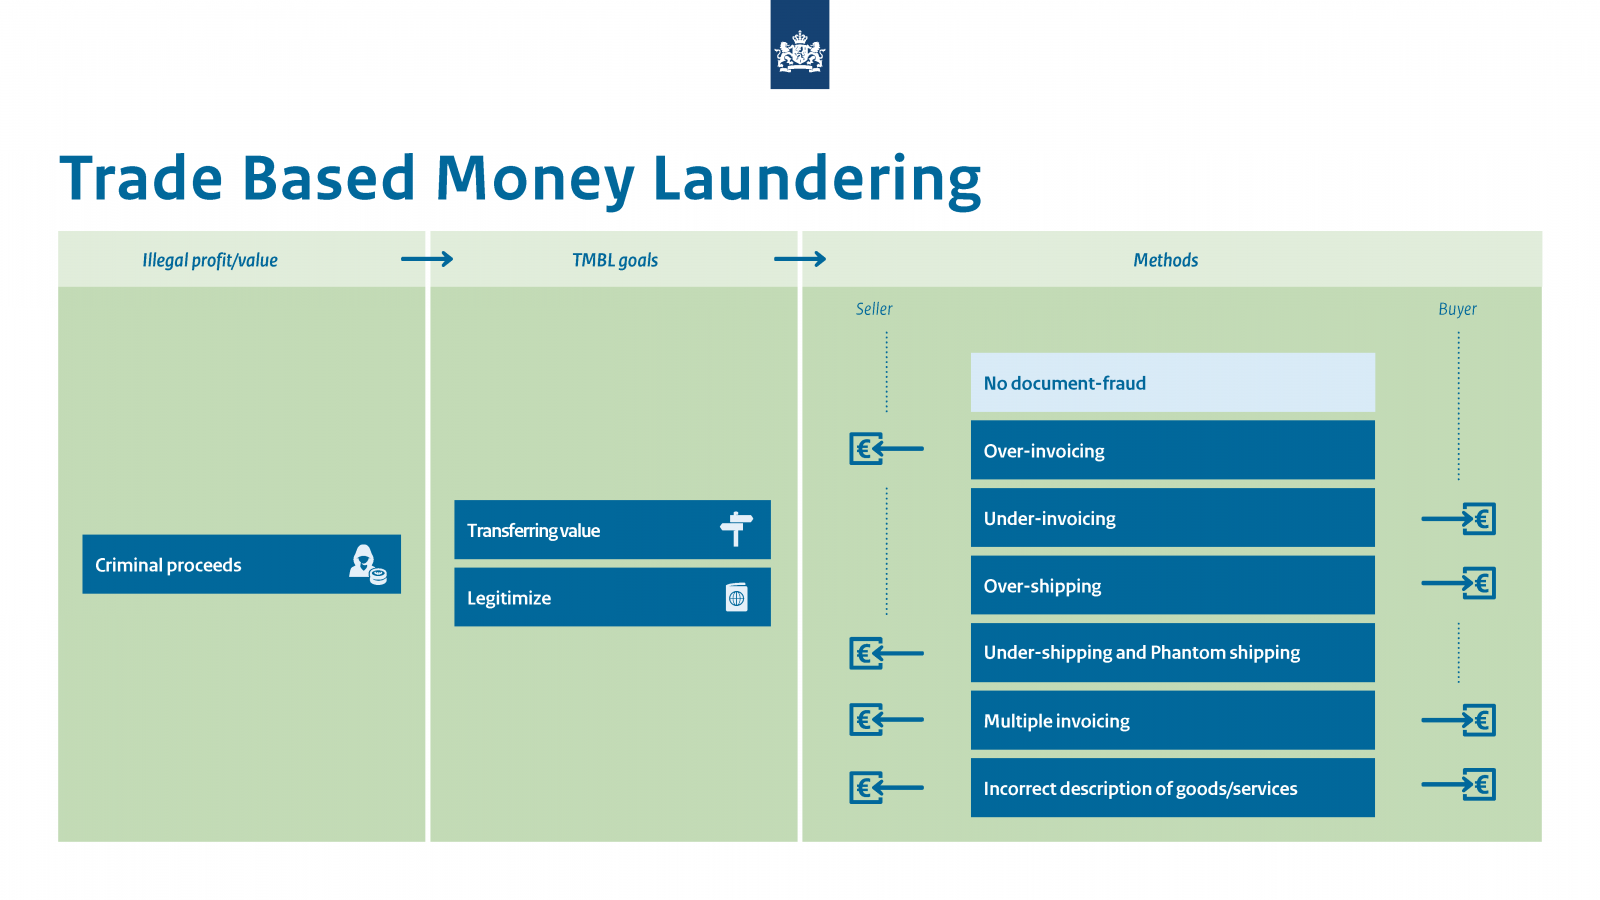 Infographic Trade Based Money Laundering. 3 columns: Illegal profit/value (criminal proceeds); TBML goals (Transferring value; Legitimize); Methods (No document fraud; Over-invoicing; Under-invoicing; Over-shipping; Under-shipping and Phantom shipping; Multiple invoicing; Incorrect description of goods/services)